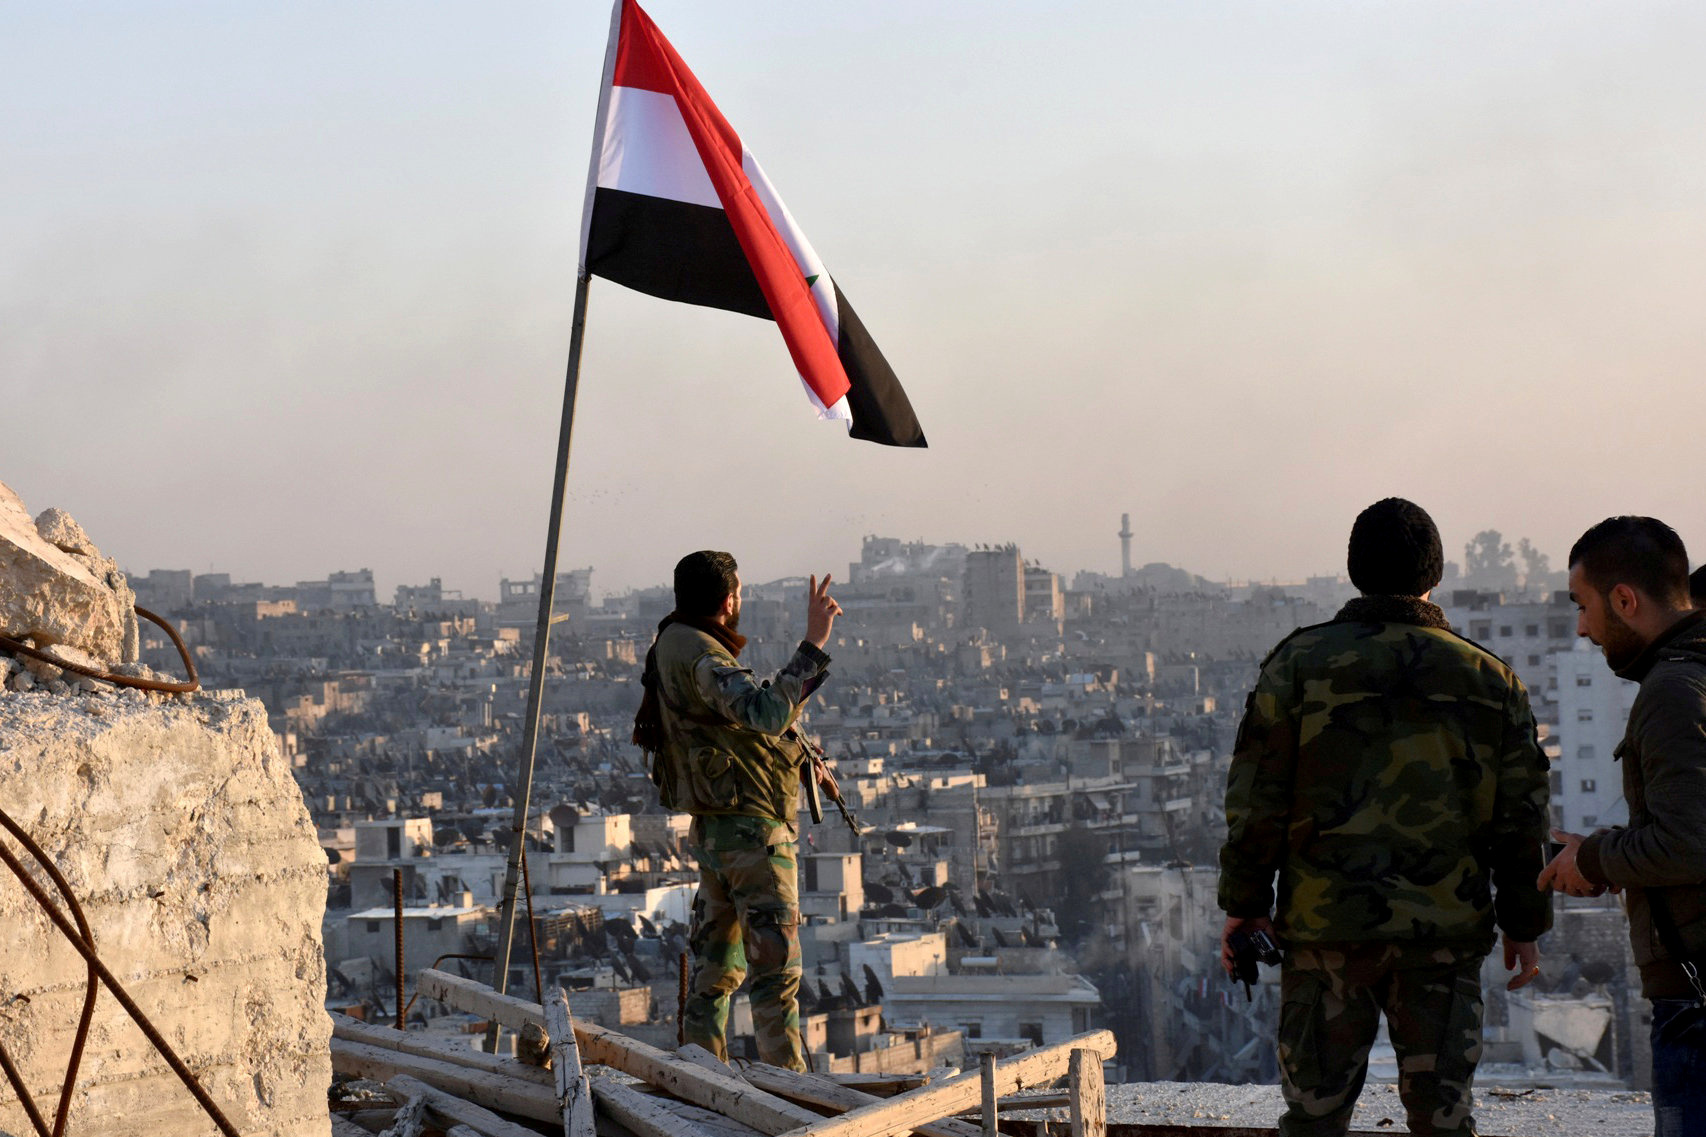 """ALEPPO 2016-12-14 A Syrian government soldier gestures a v-sign under the Syrian national flag near a general view of eastern Aleppo after they took control of al-Sakhour neigbourhood in Aleppo, Syria in this handout picture provided by SANA on November 28, 2016. SANA/Handout via REUTERS ATTENTION EDITORS - THIS IMAGE WAS PROVIDED BY A THIRD PARTY. EDITORIAL USE ONLY. REUTERS IS UNABLE TO INDEPENDENTLY VERIFY THIS IMAGE. SEARCH """"ALEPPO TIMELINE"""" FOR THIS STORY Photo: / REUTERS / TT / kod 72000"""